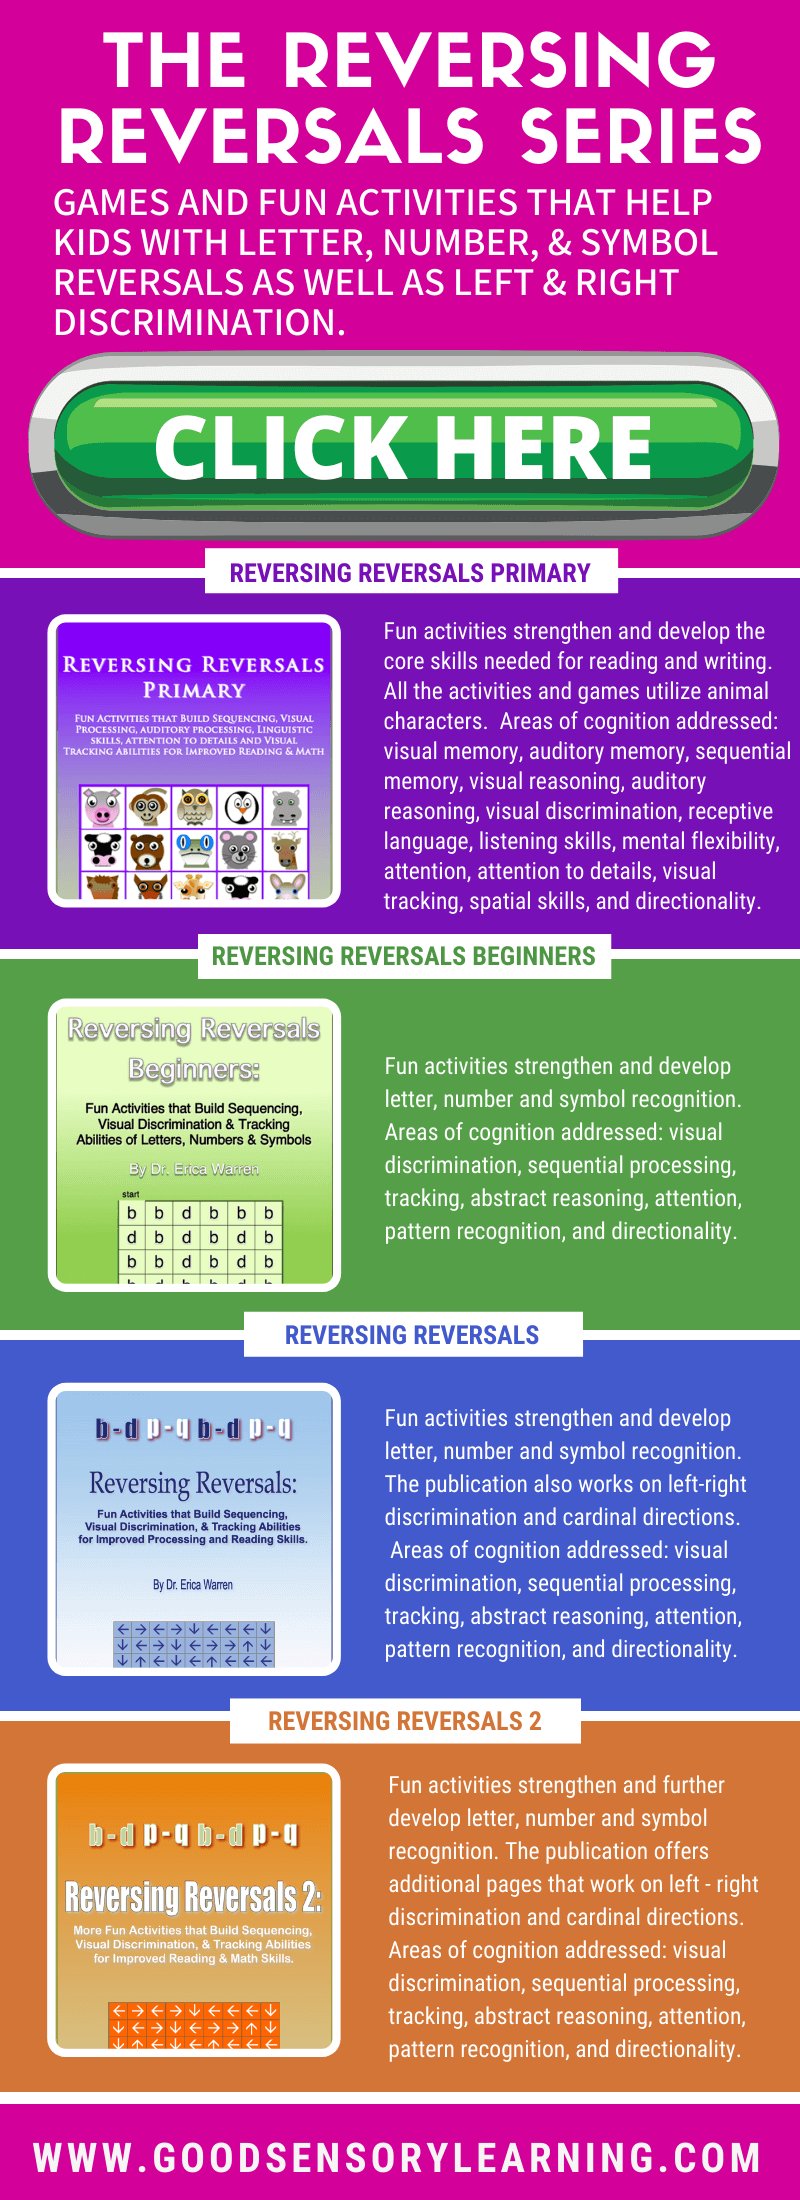 colorful infographic of the reversing reversals series